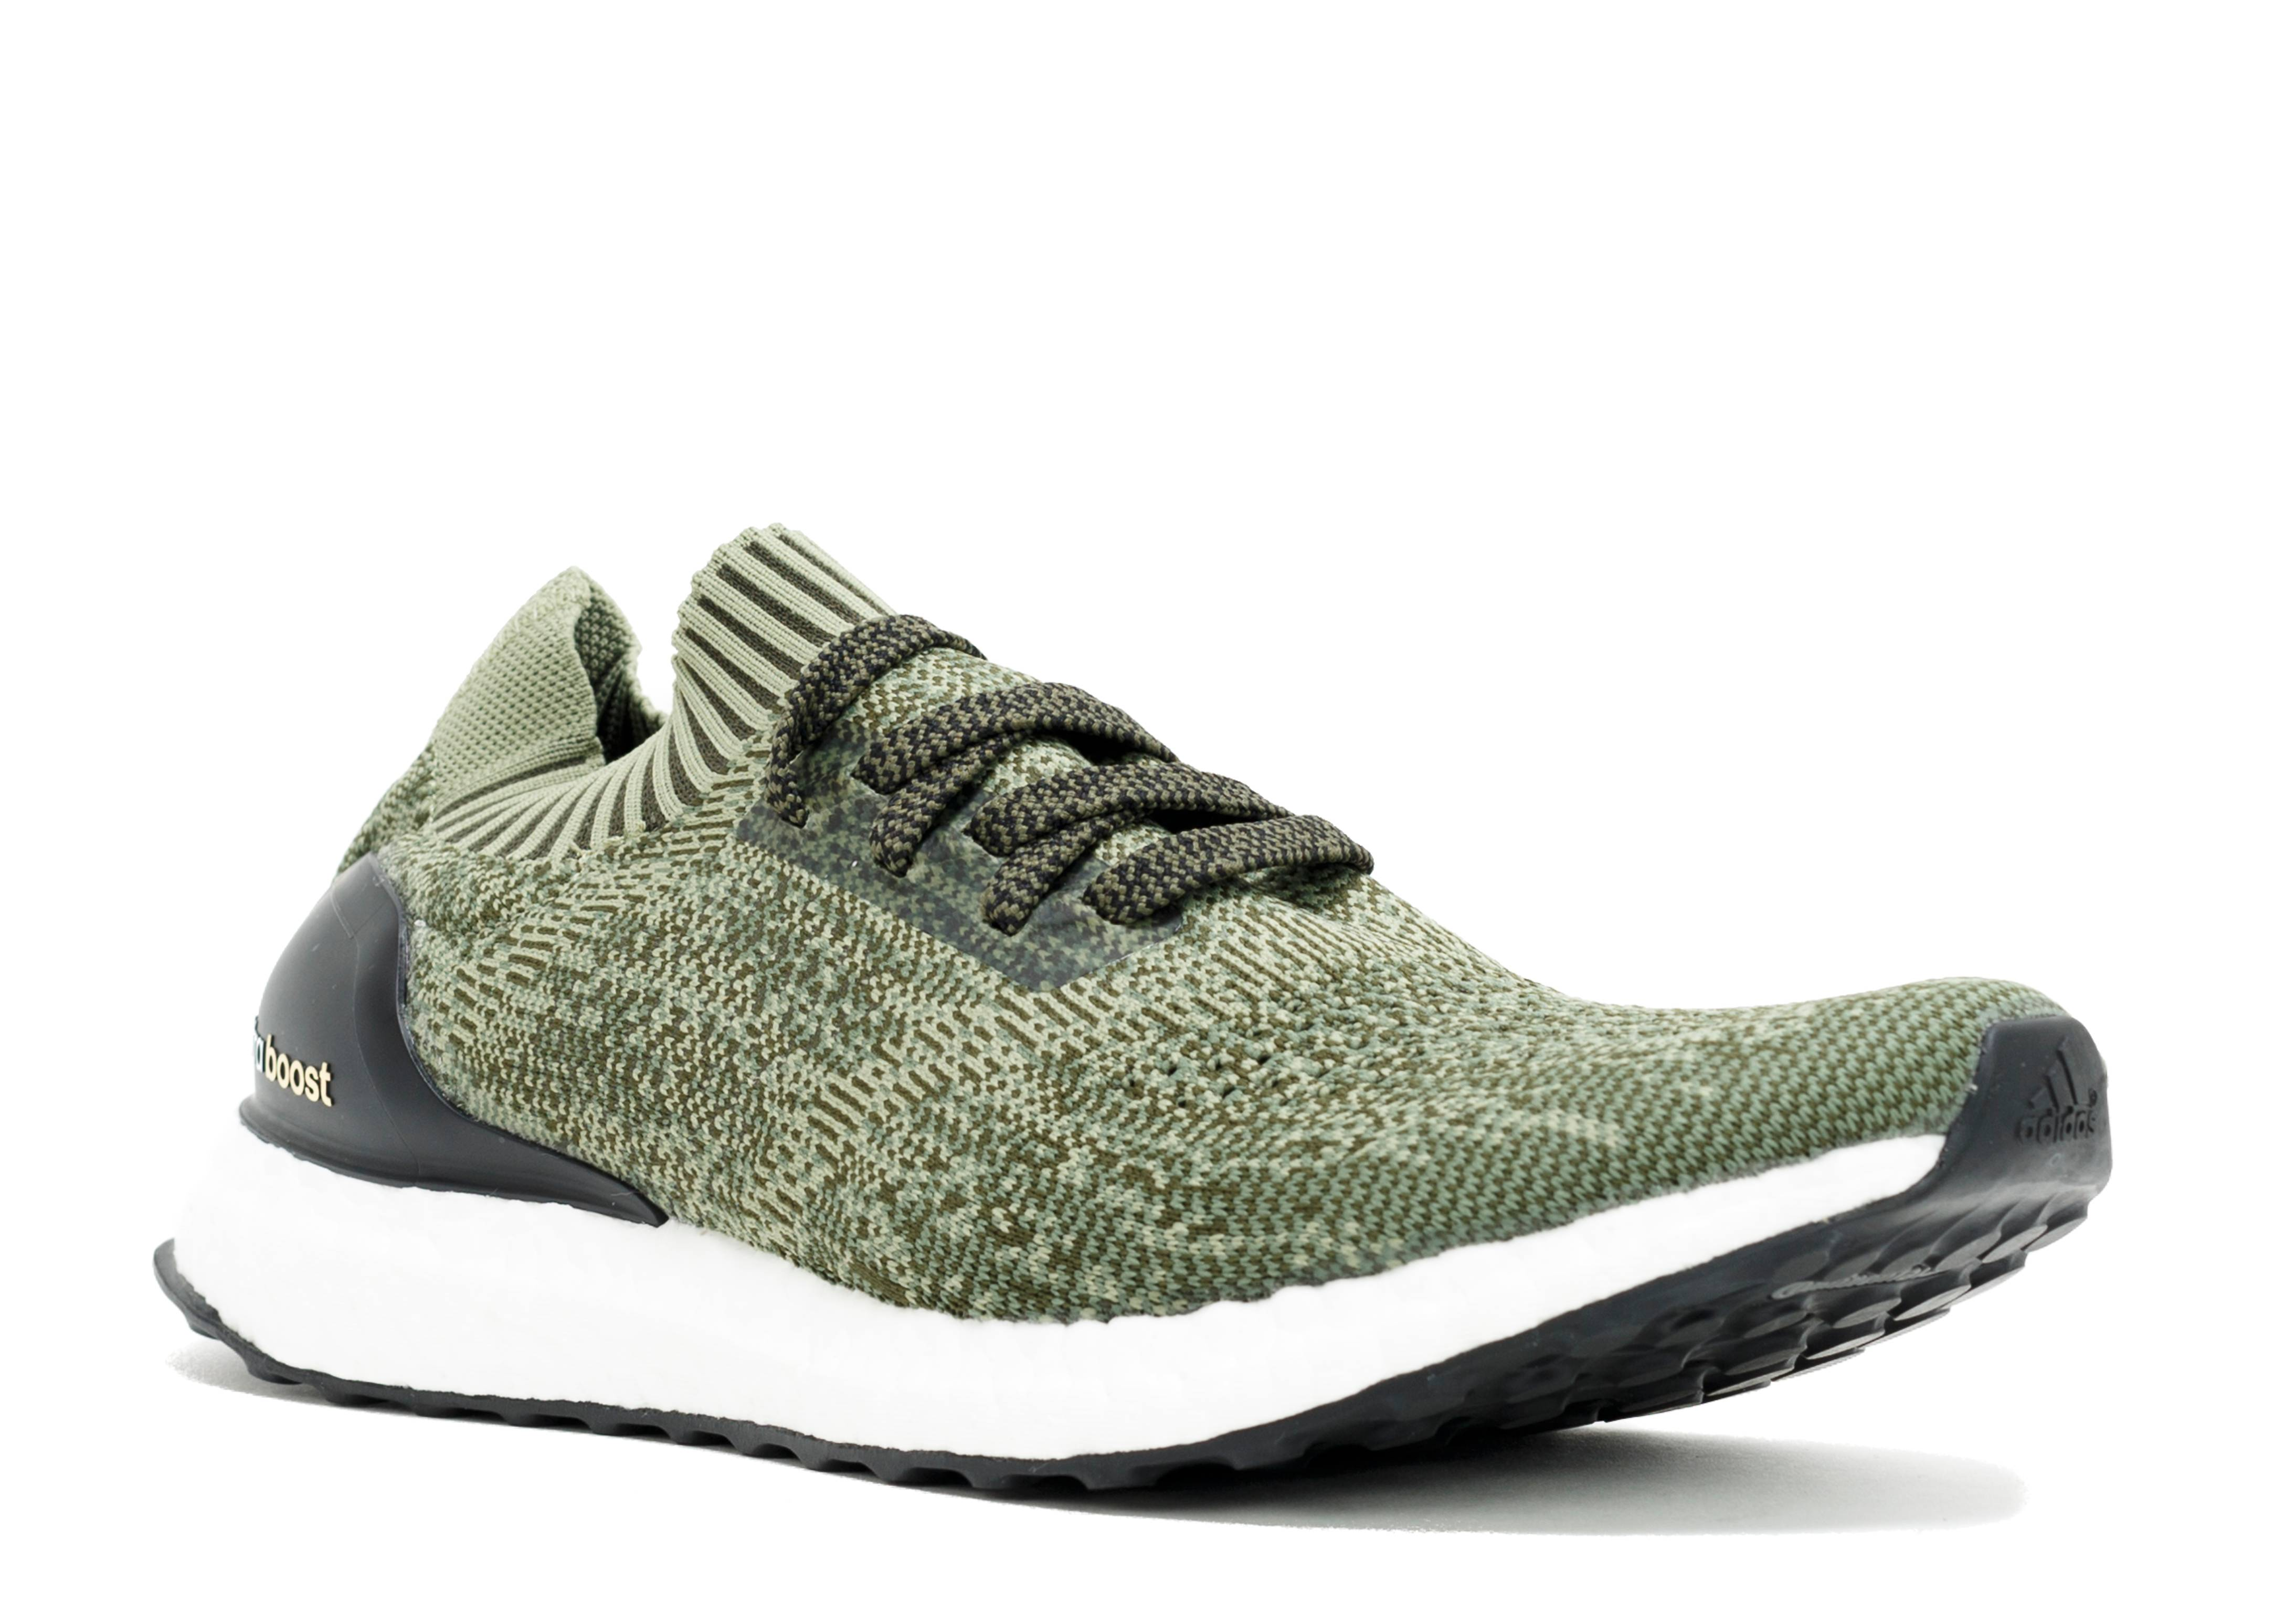 Ultra Boost Uncaged M - Adidas - bb3901 - olive/black-whtie | Flight Club